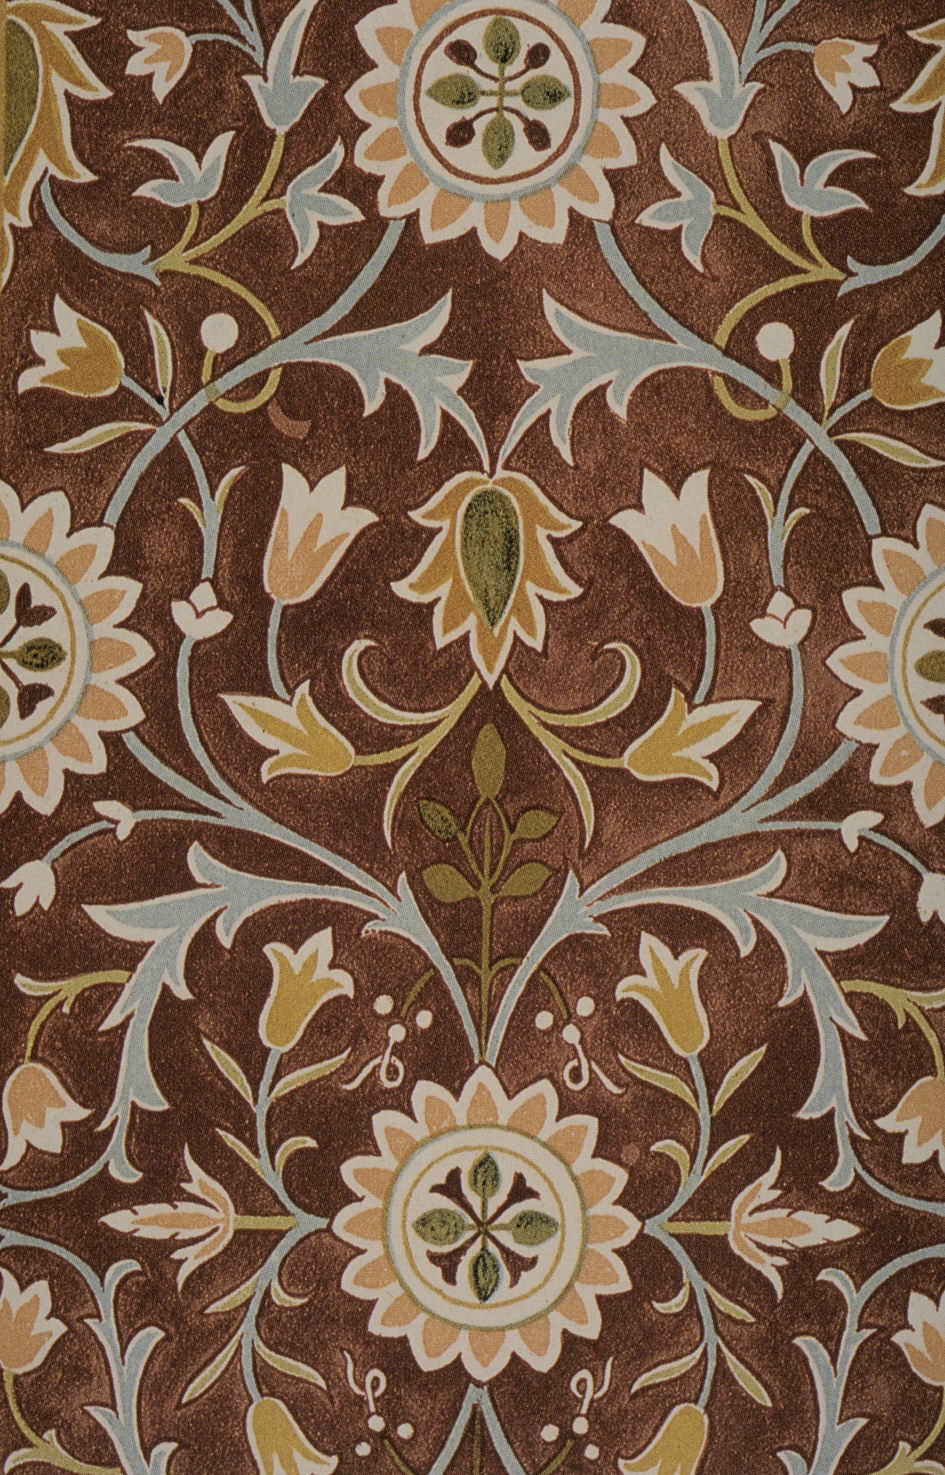 Carpet Design Amazing Filemorris Little Flower Carpet Design Detail  Wikimedia Commons Design Decoration